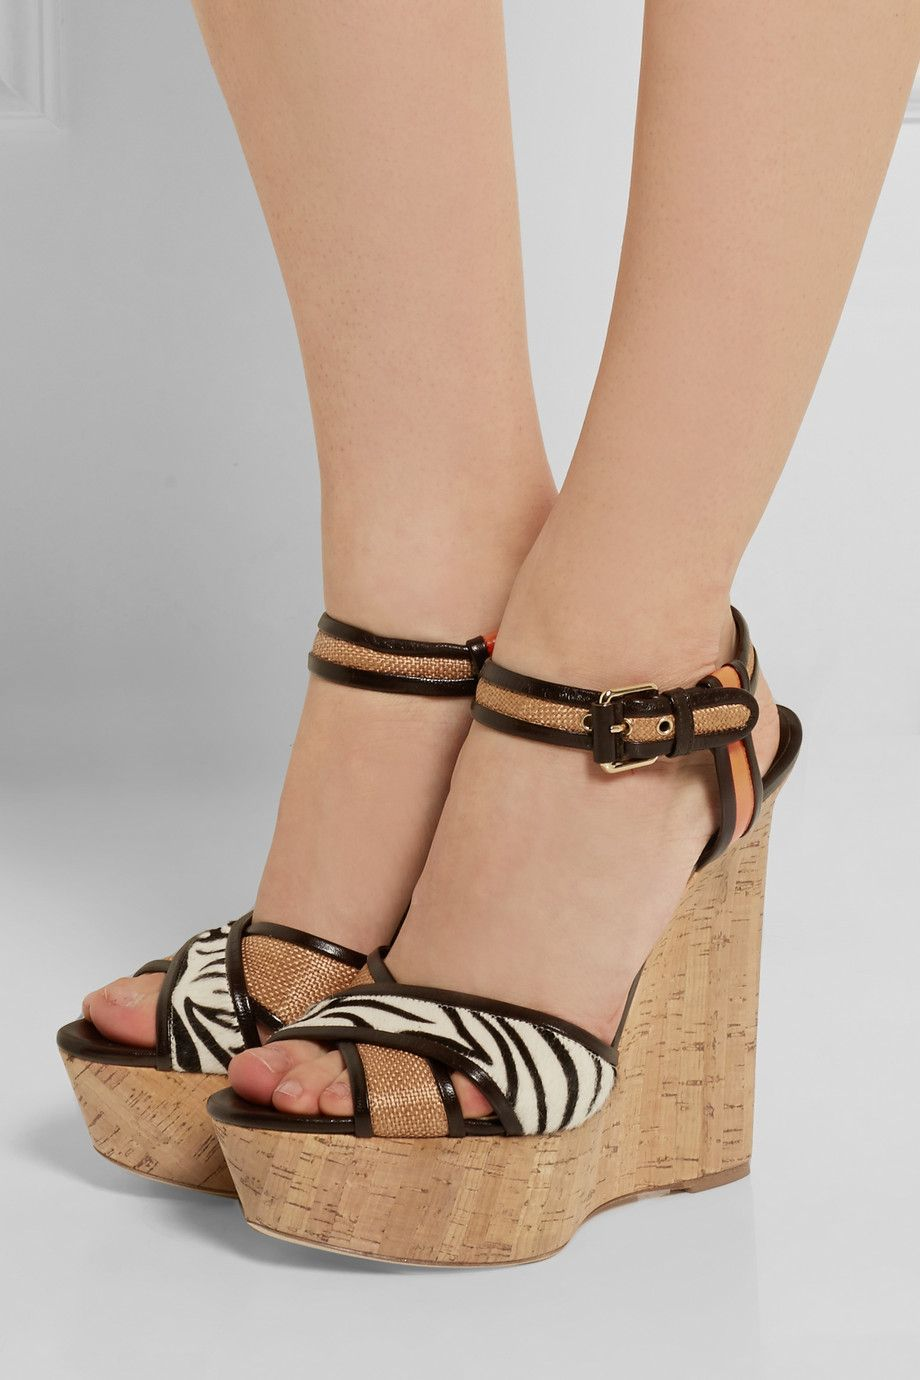 BRIAN ATWOOD Woman Isotta Leather, Raffia And Calf Hair Wedge Sandals Size 40